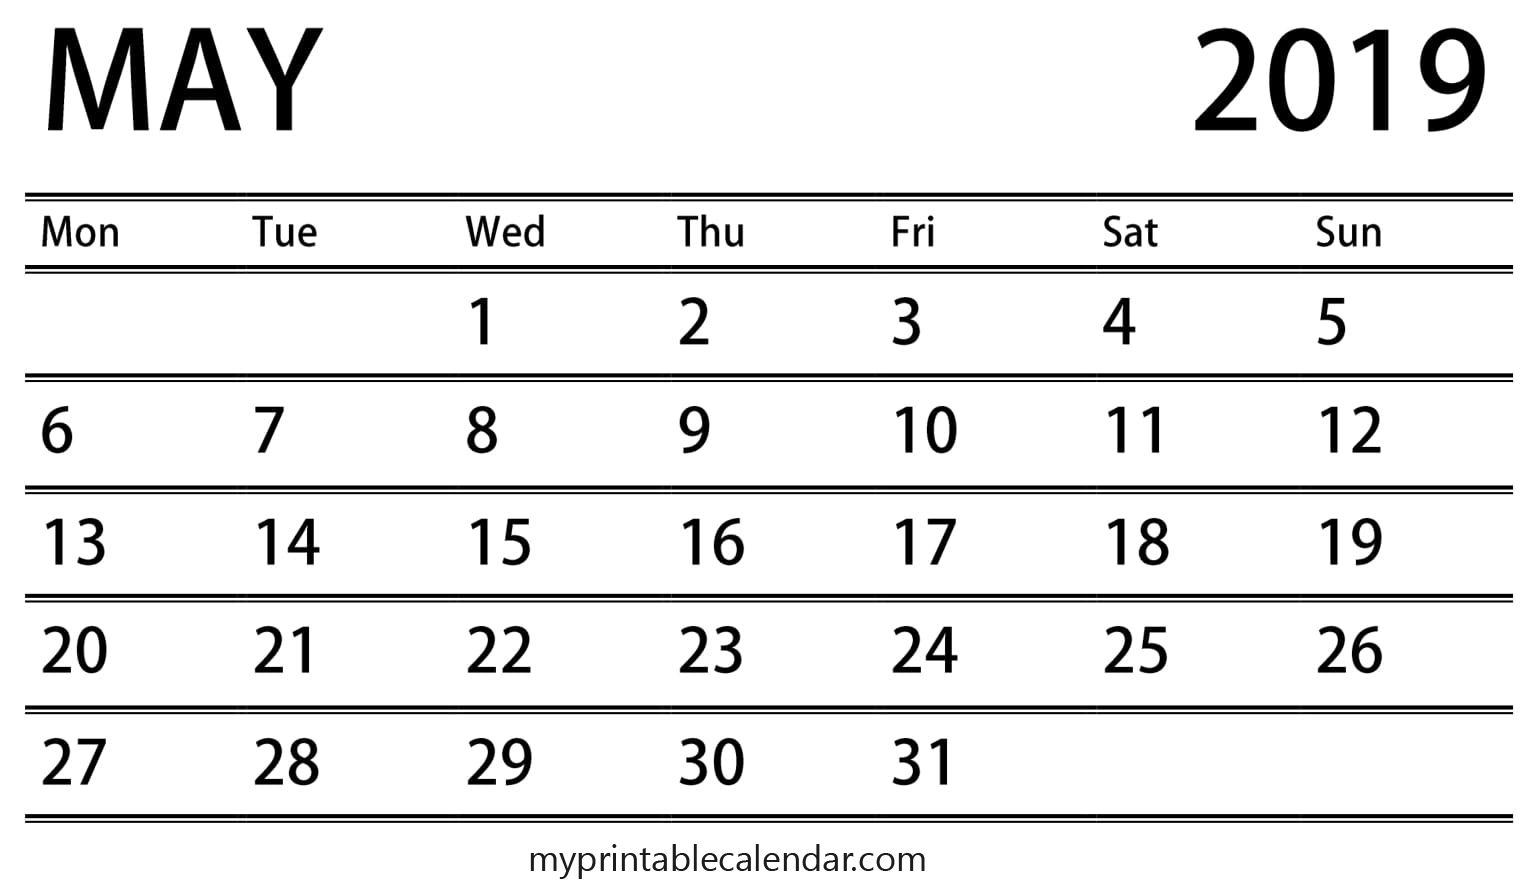 Events Calendar For May 2019 | May Calendar 2019 | Free Printable pertaining to Free Printable Event Calendar Template